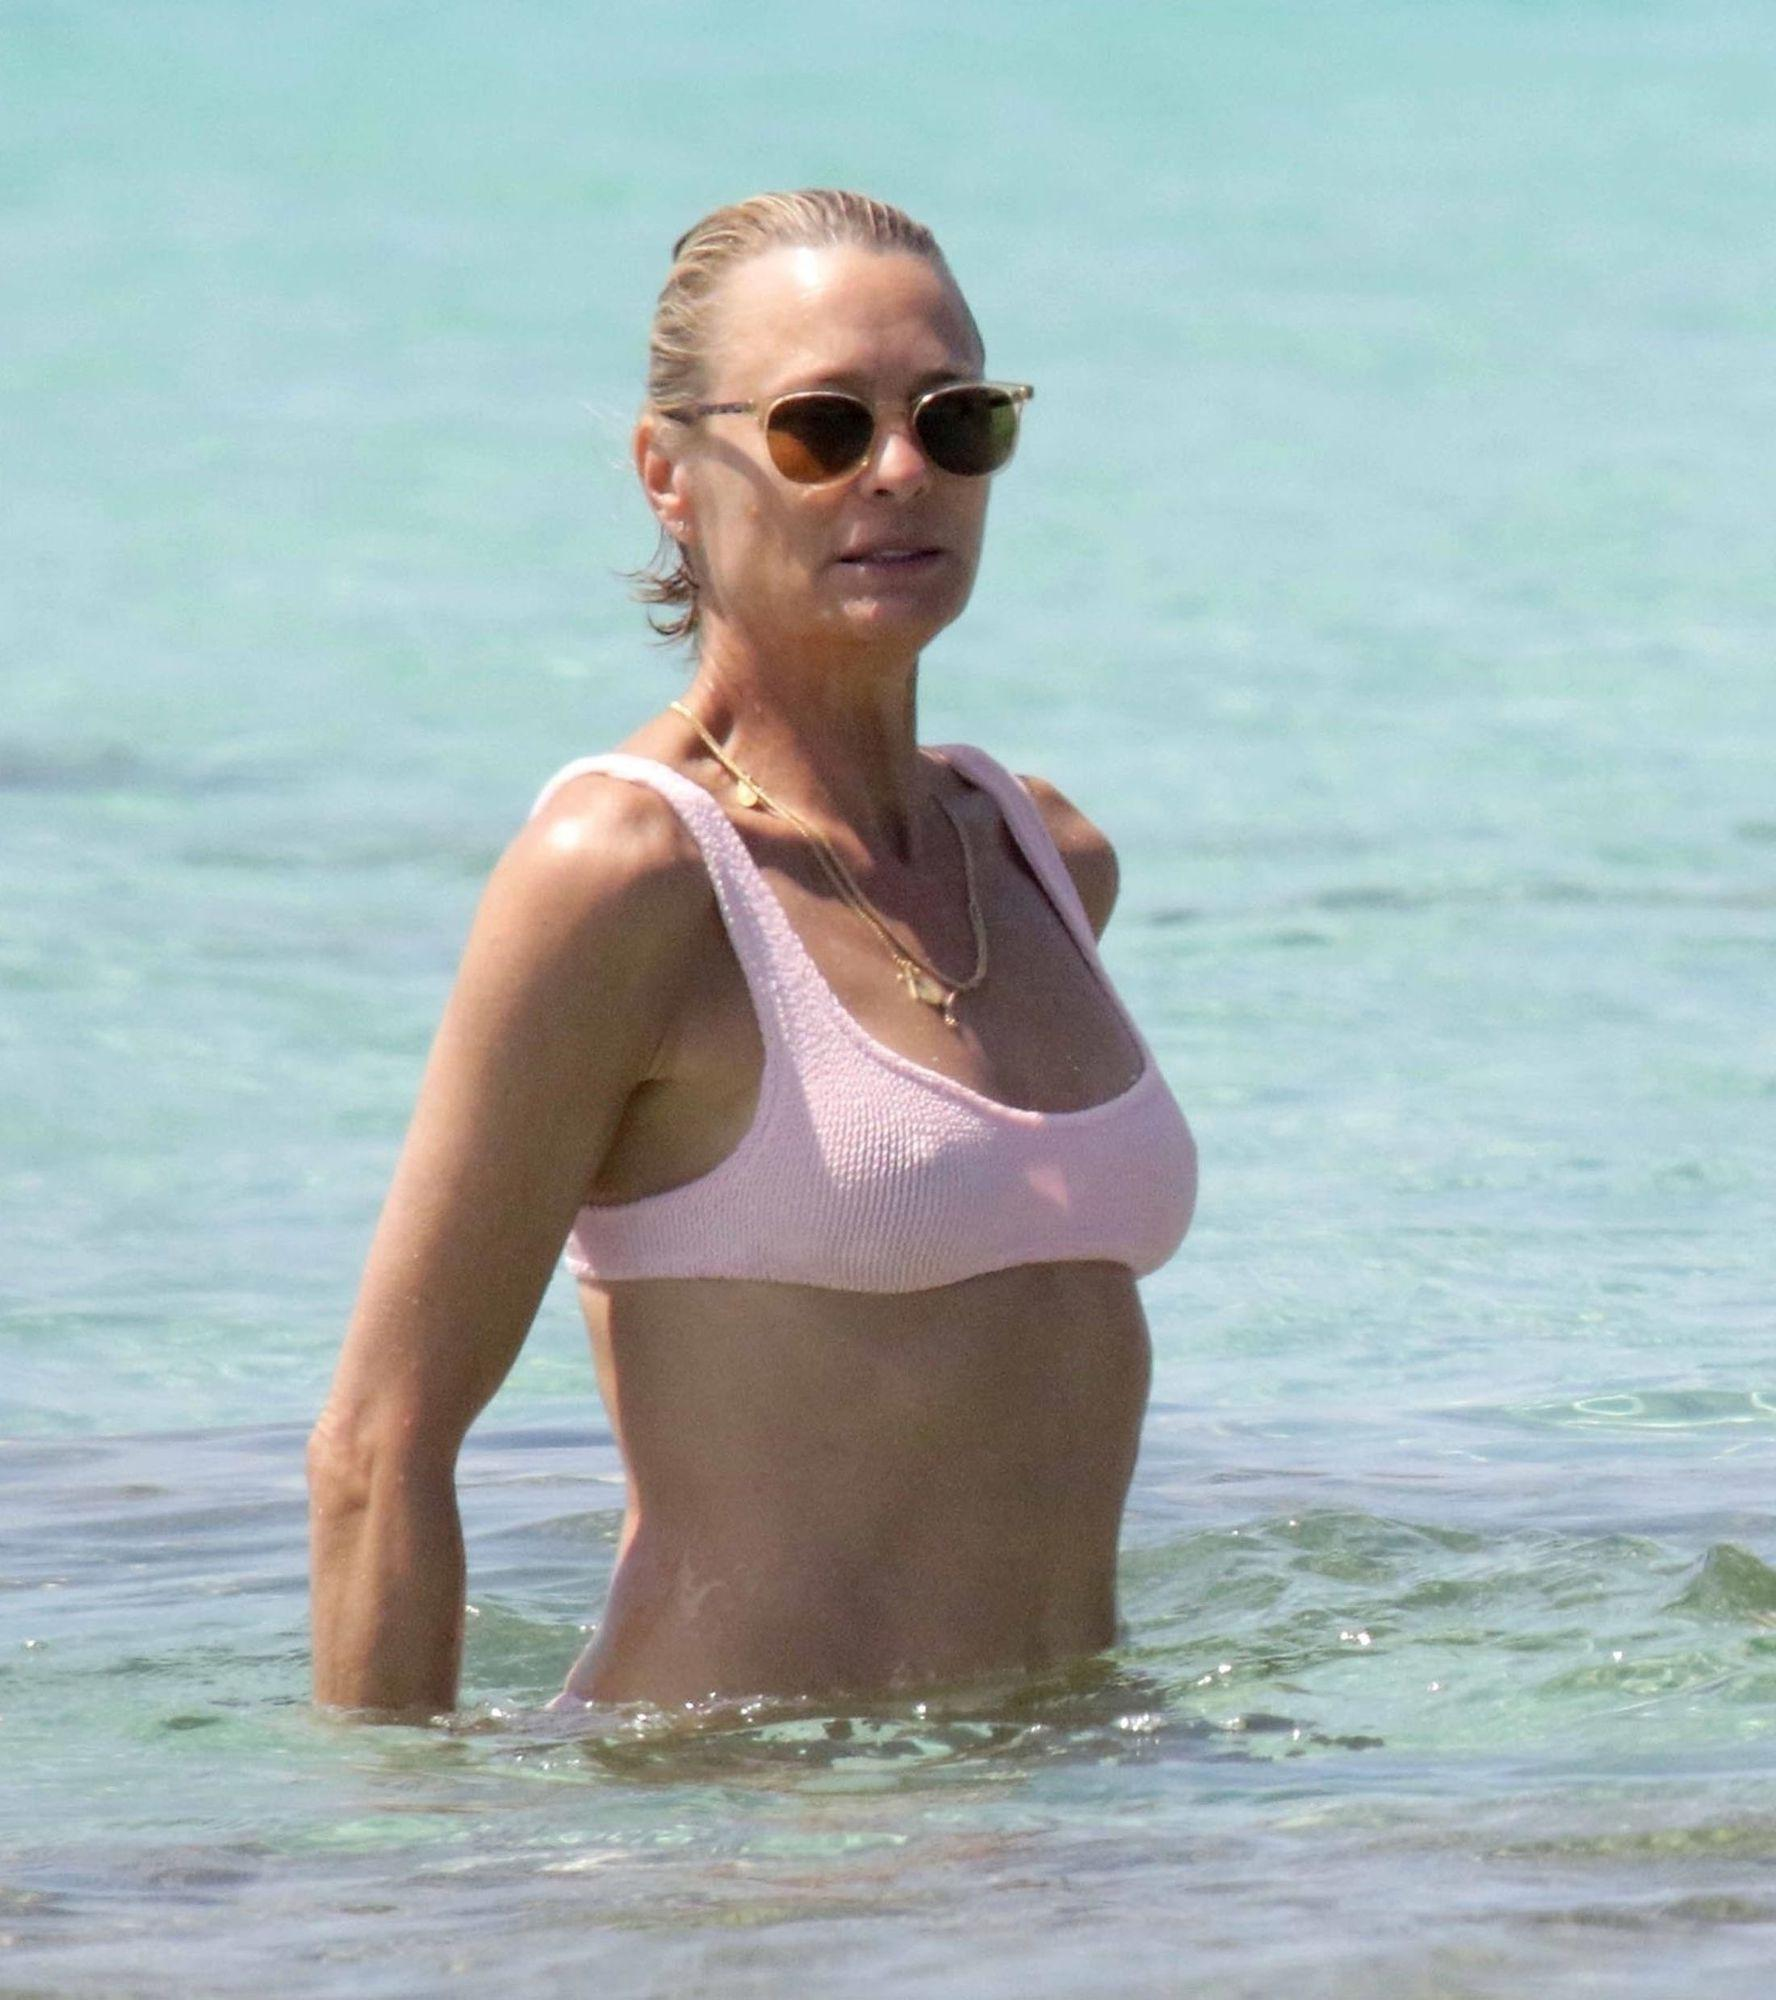 *EXCLUSIVE* Robin Wright and Clement Giraudet show PDA on holiday in Formentera